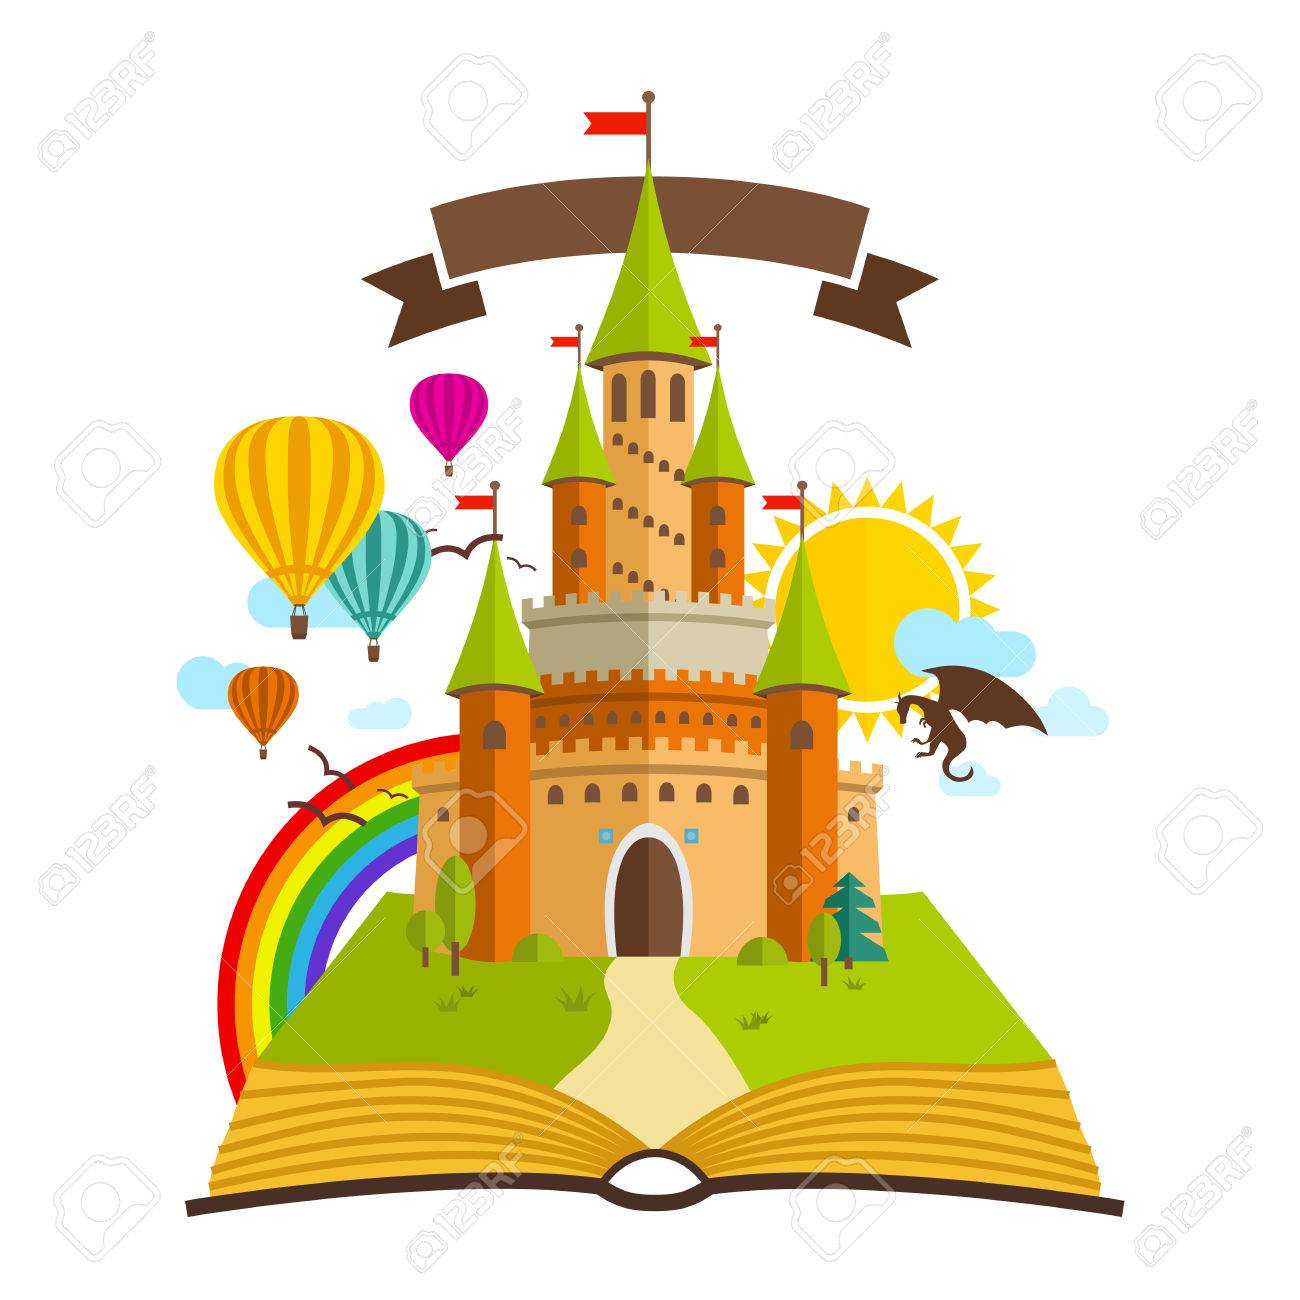 hight resolution of fairy tale castle vector illustration with book dragon sun clouds baloons